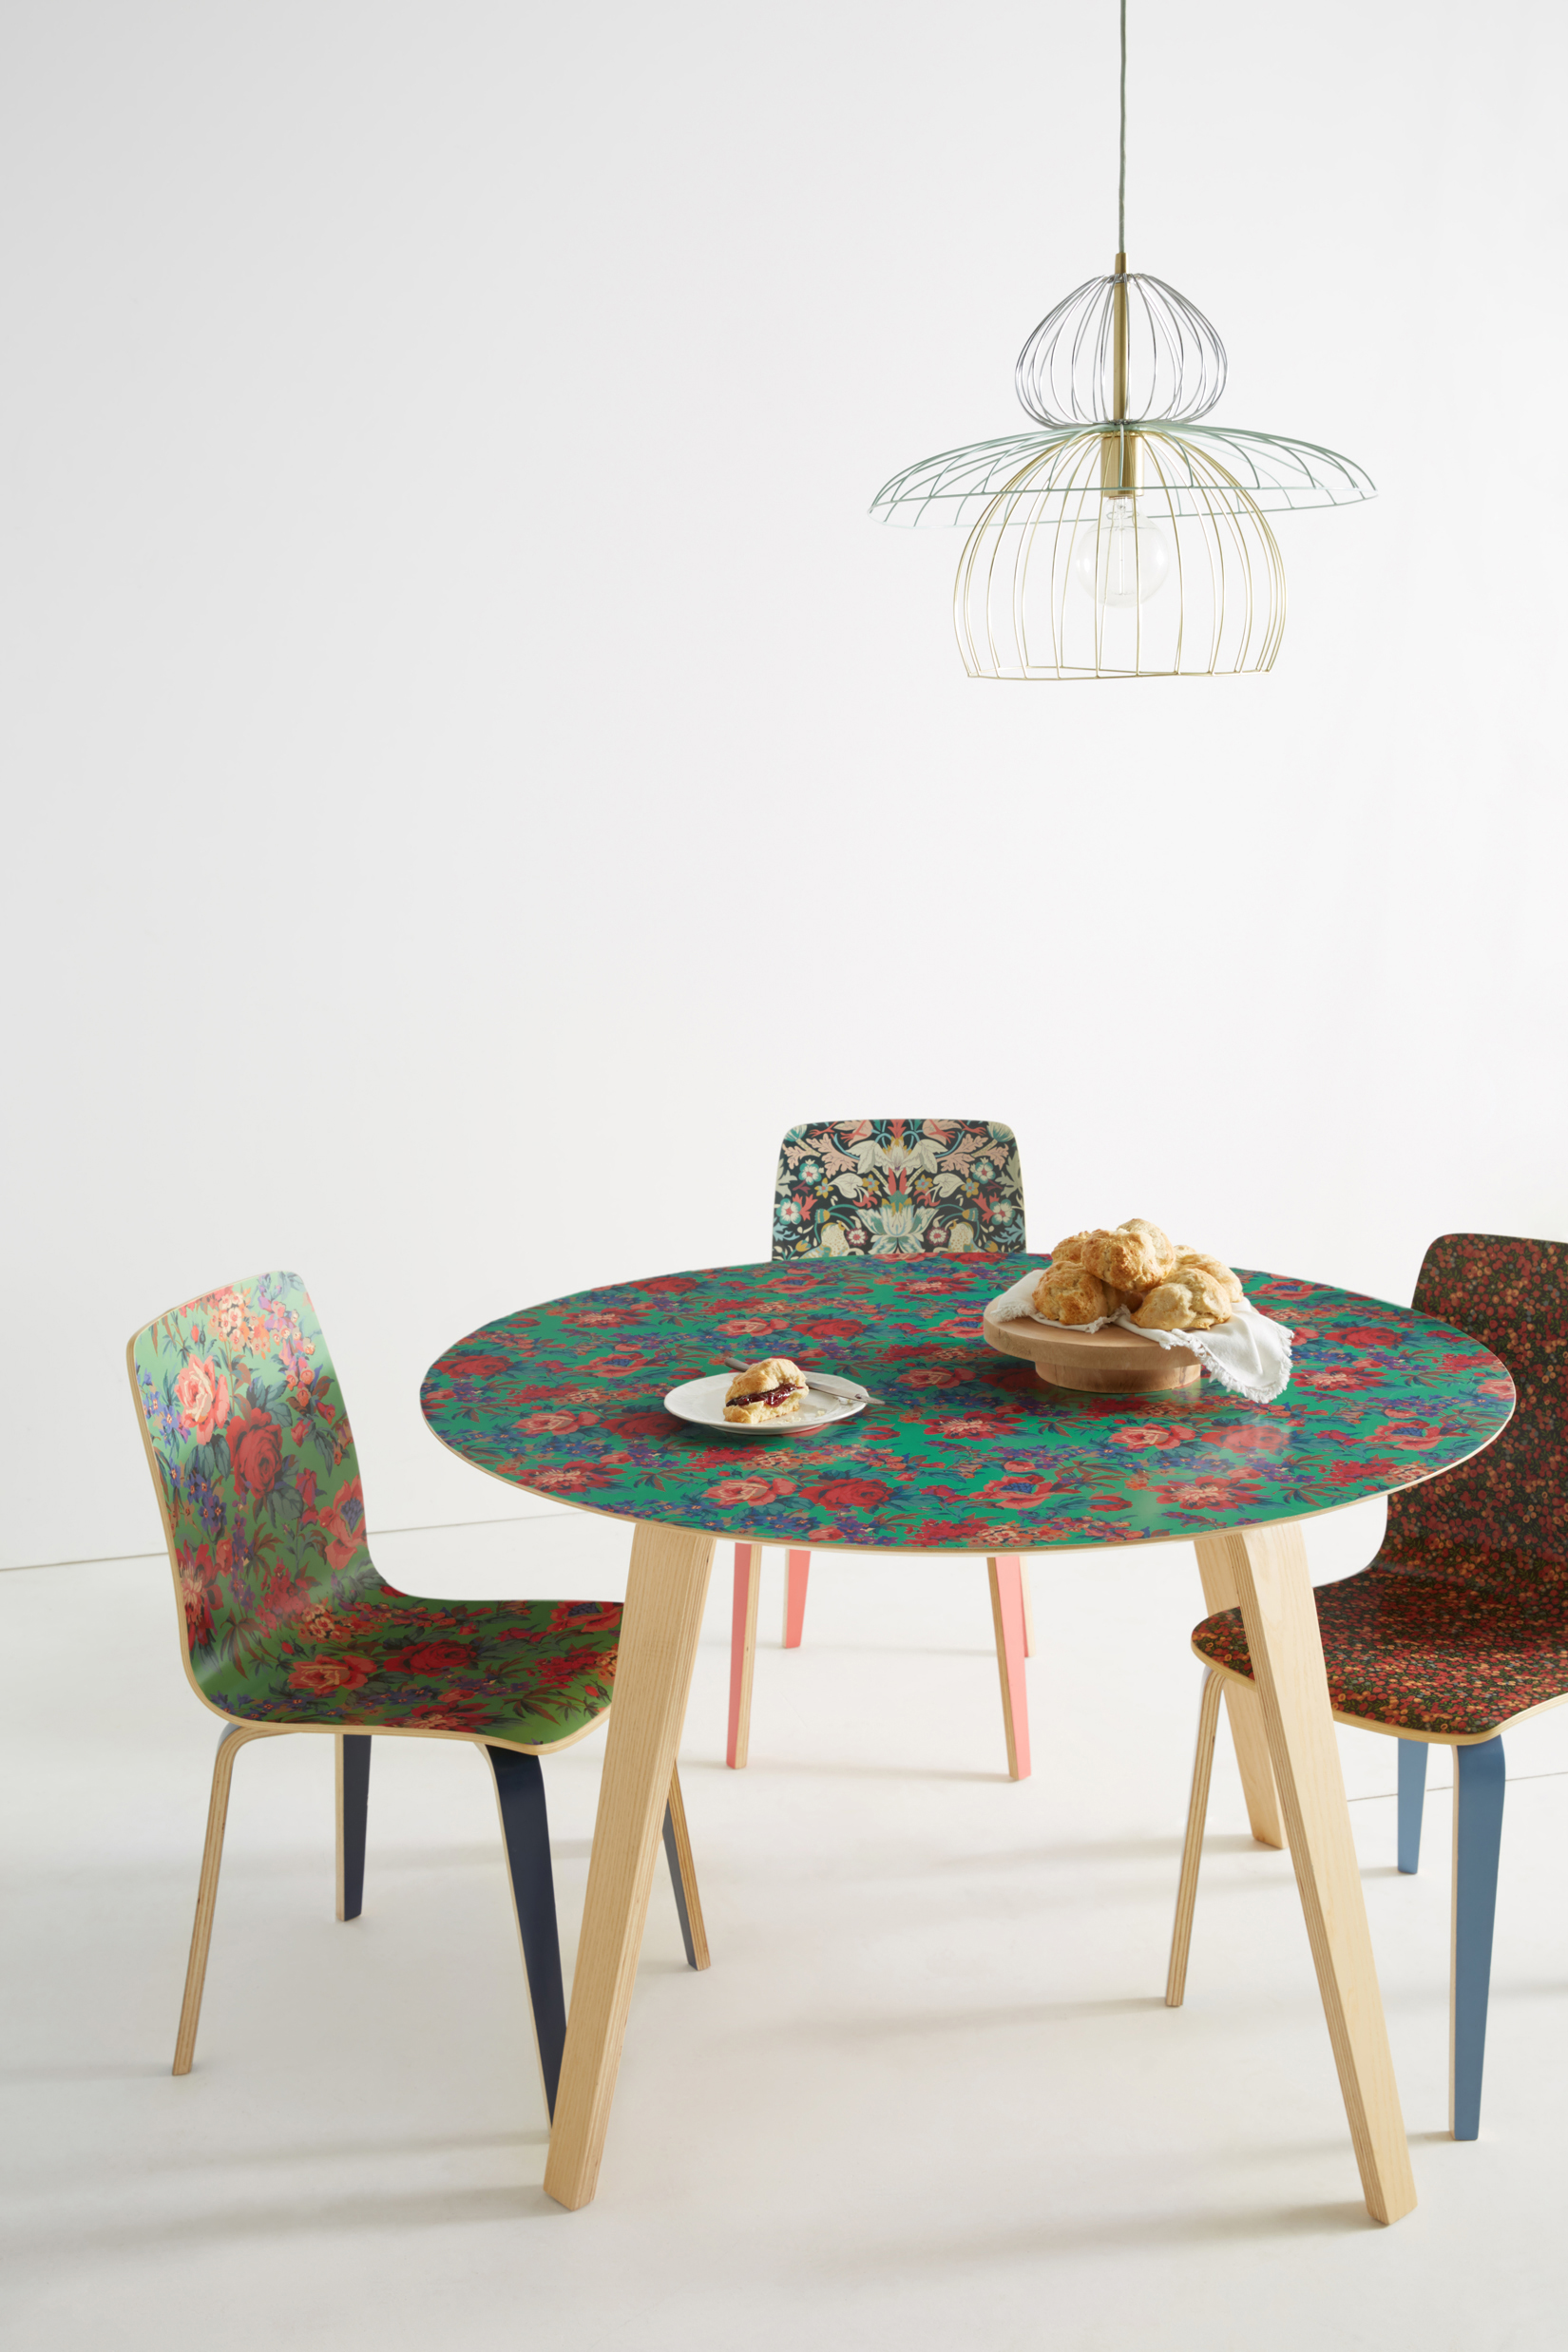 Kitchen Tables That Deserve a Spot in Your Home - Sunset ...